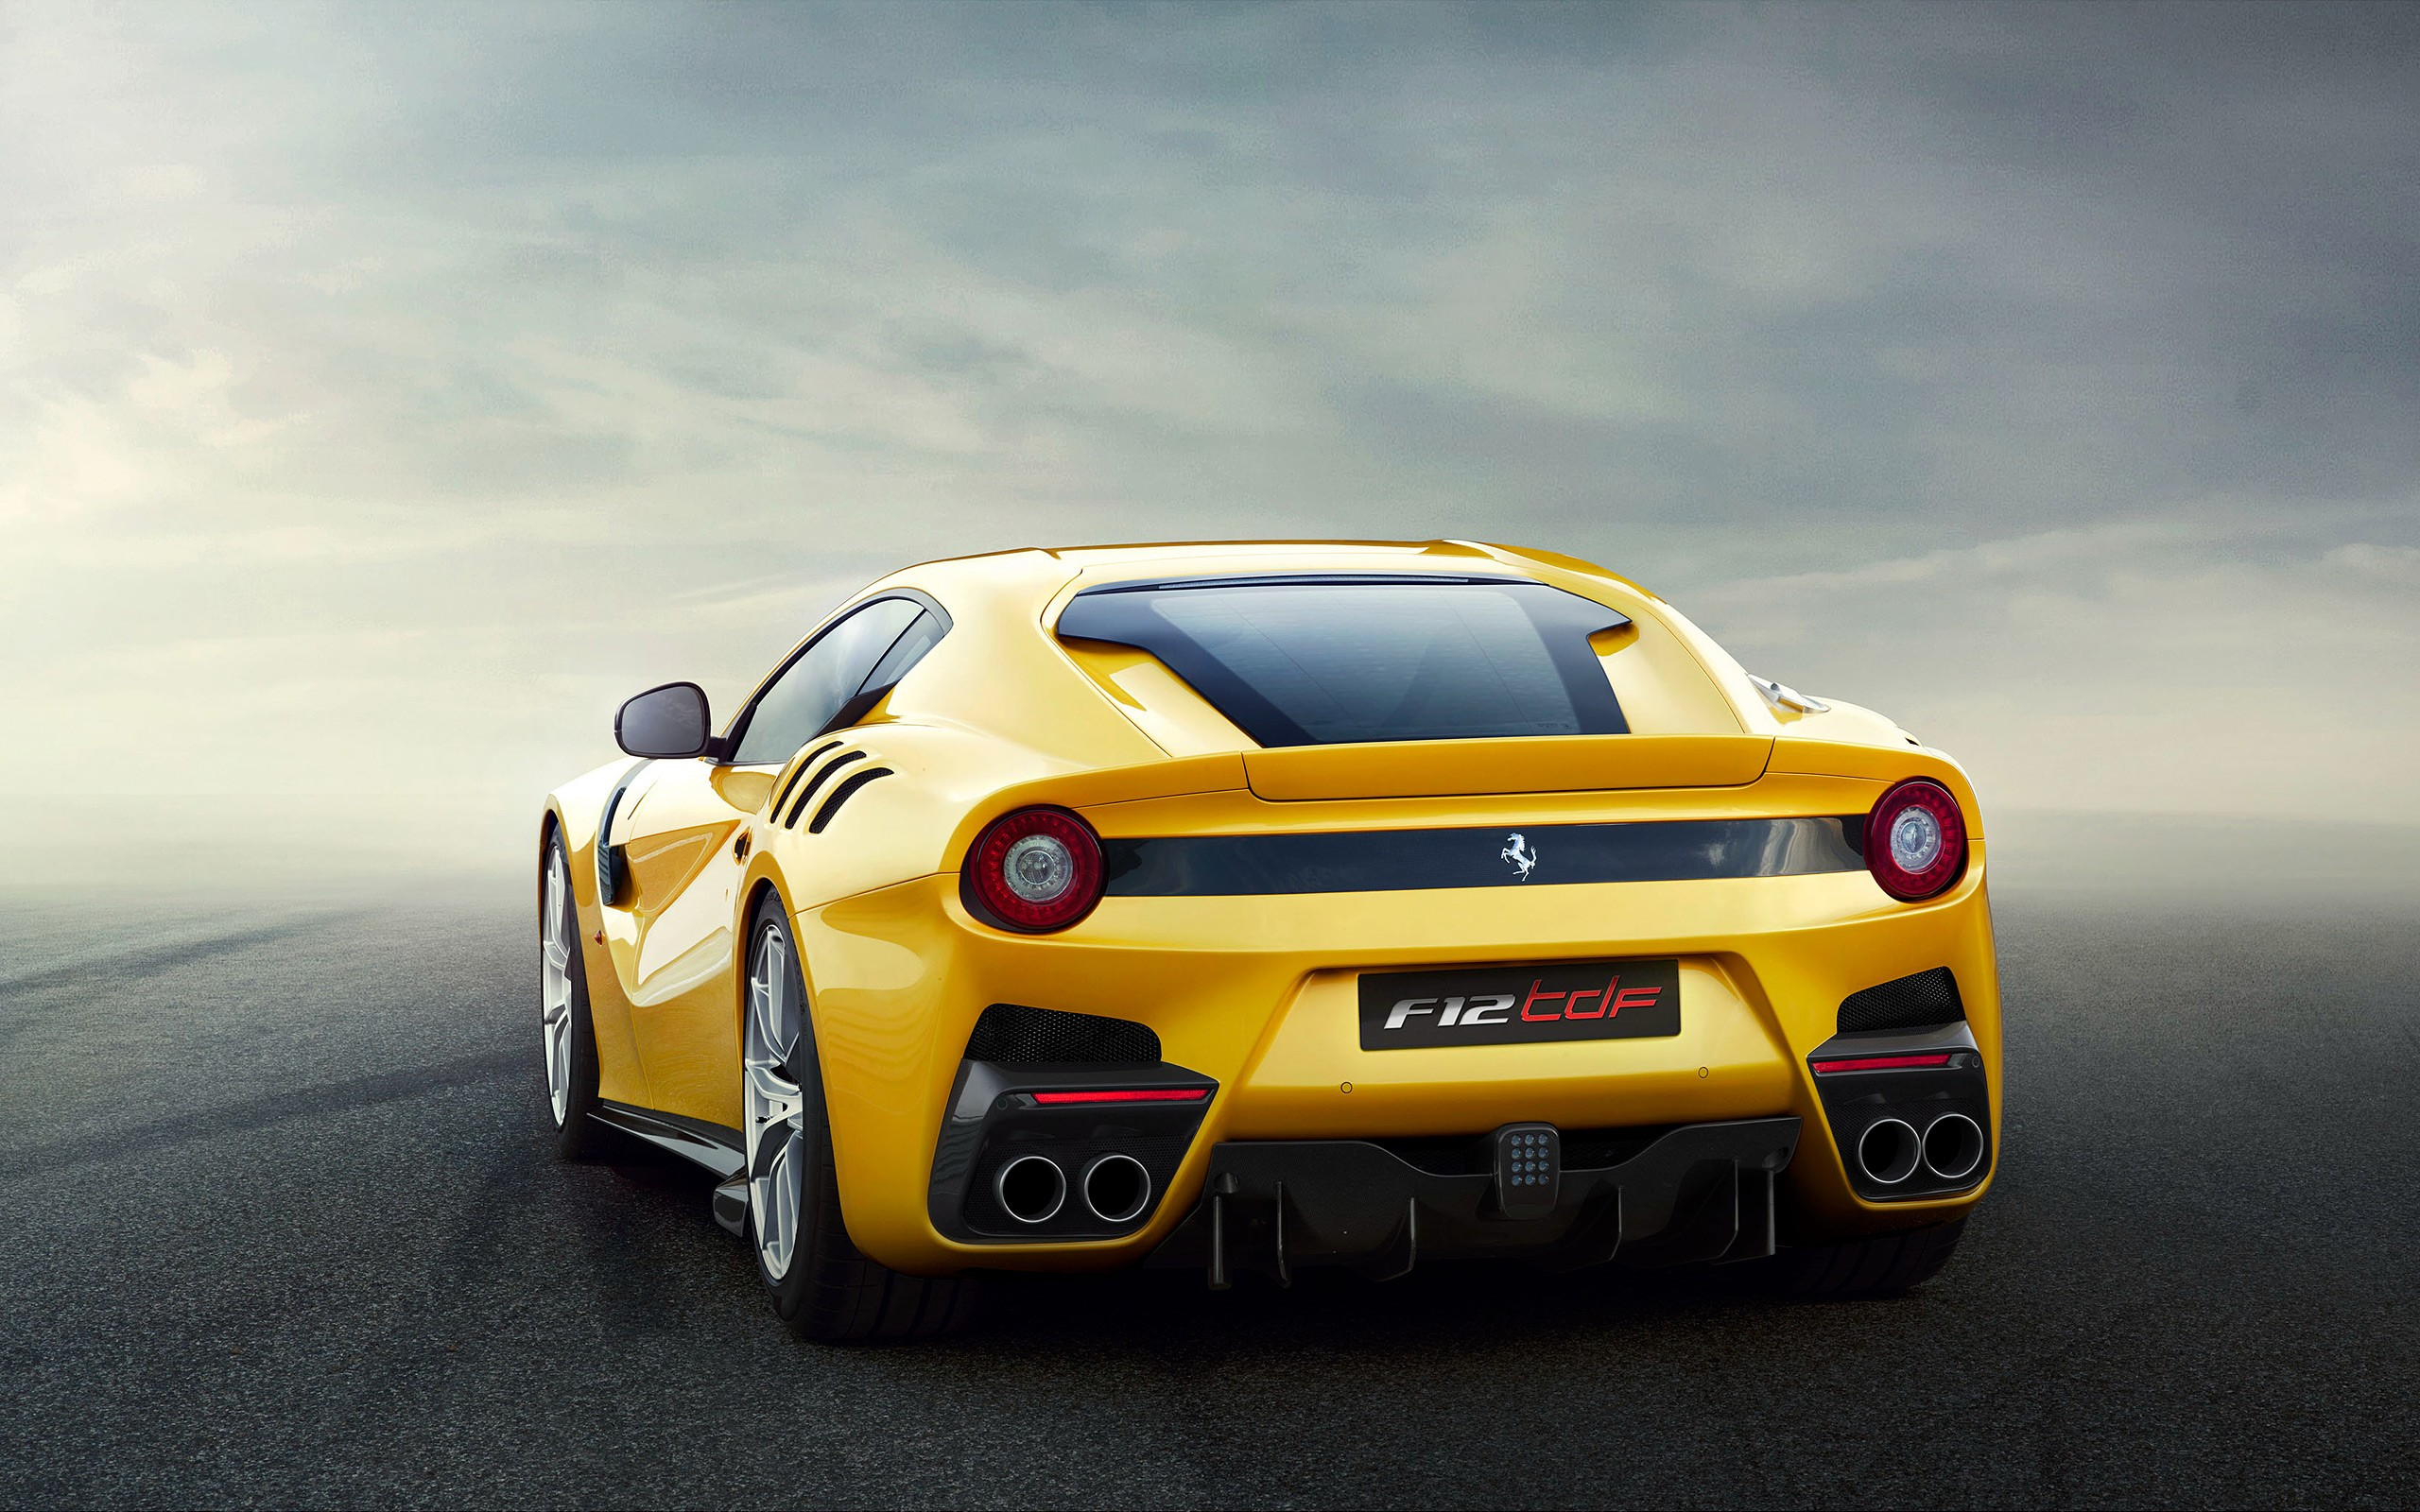 General 2560x1600 Ferrari F12 TDF car Ferrari vehicle yellow cars